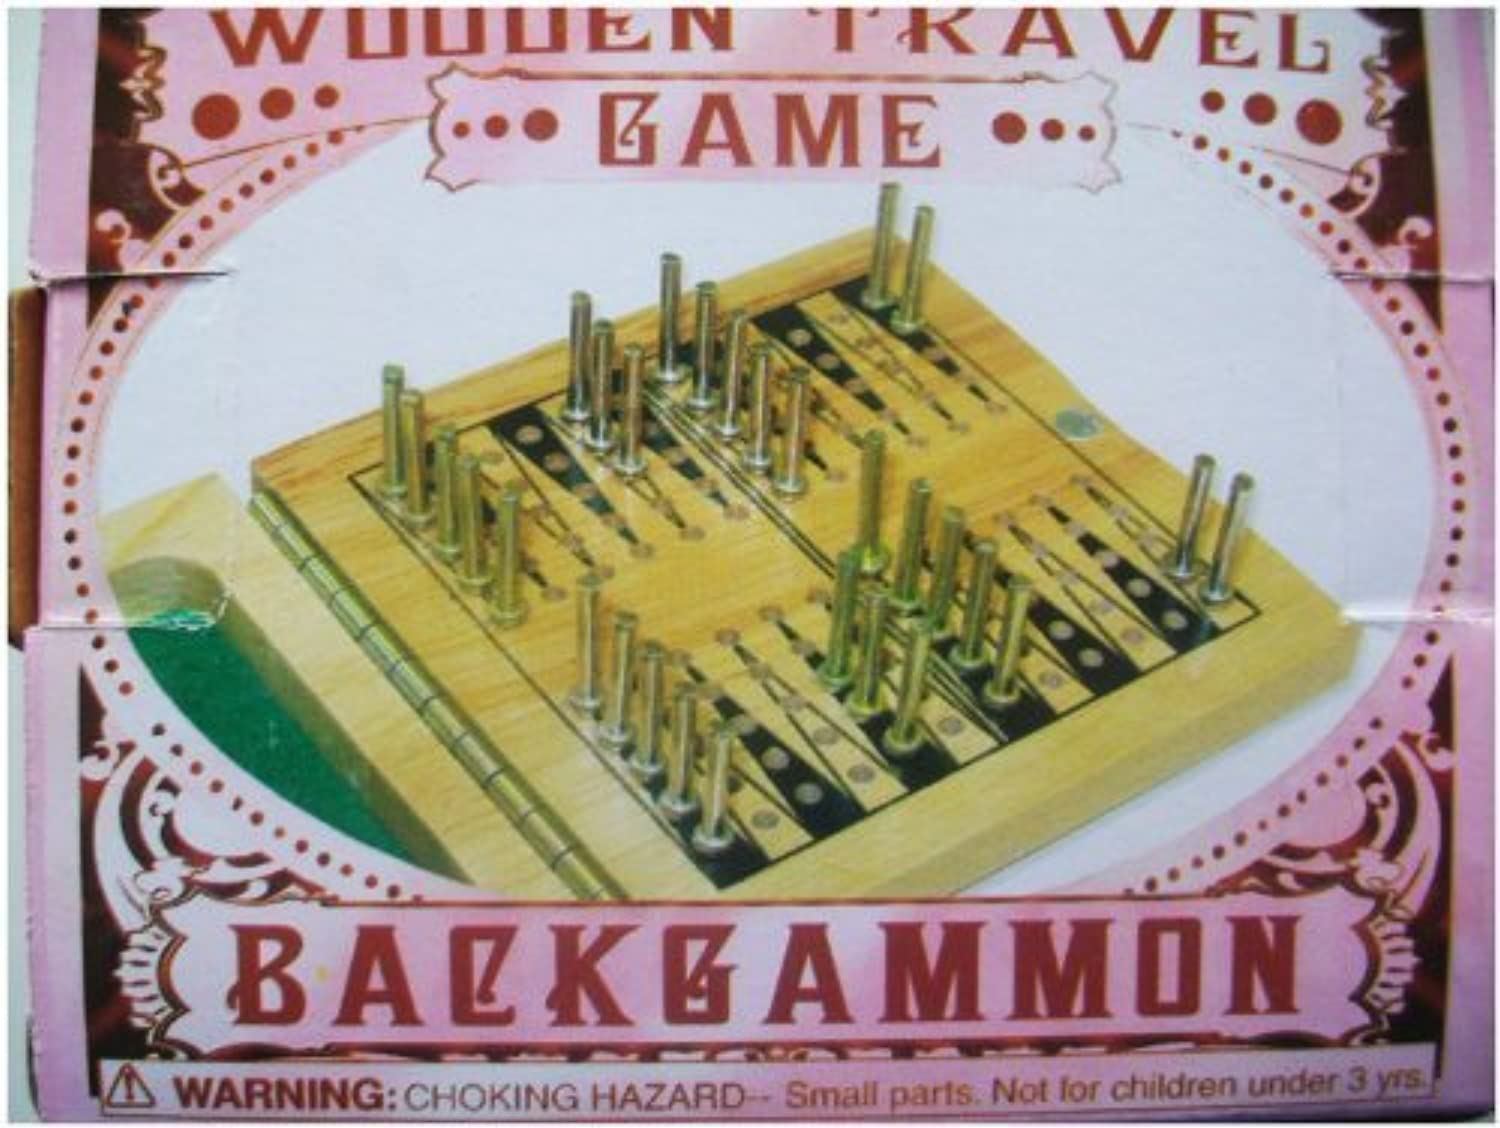 Wooden Travel Game - Backgammon by House of marbles